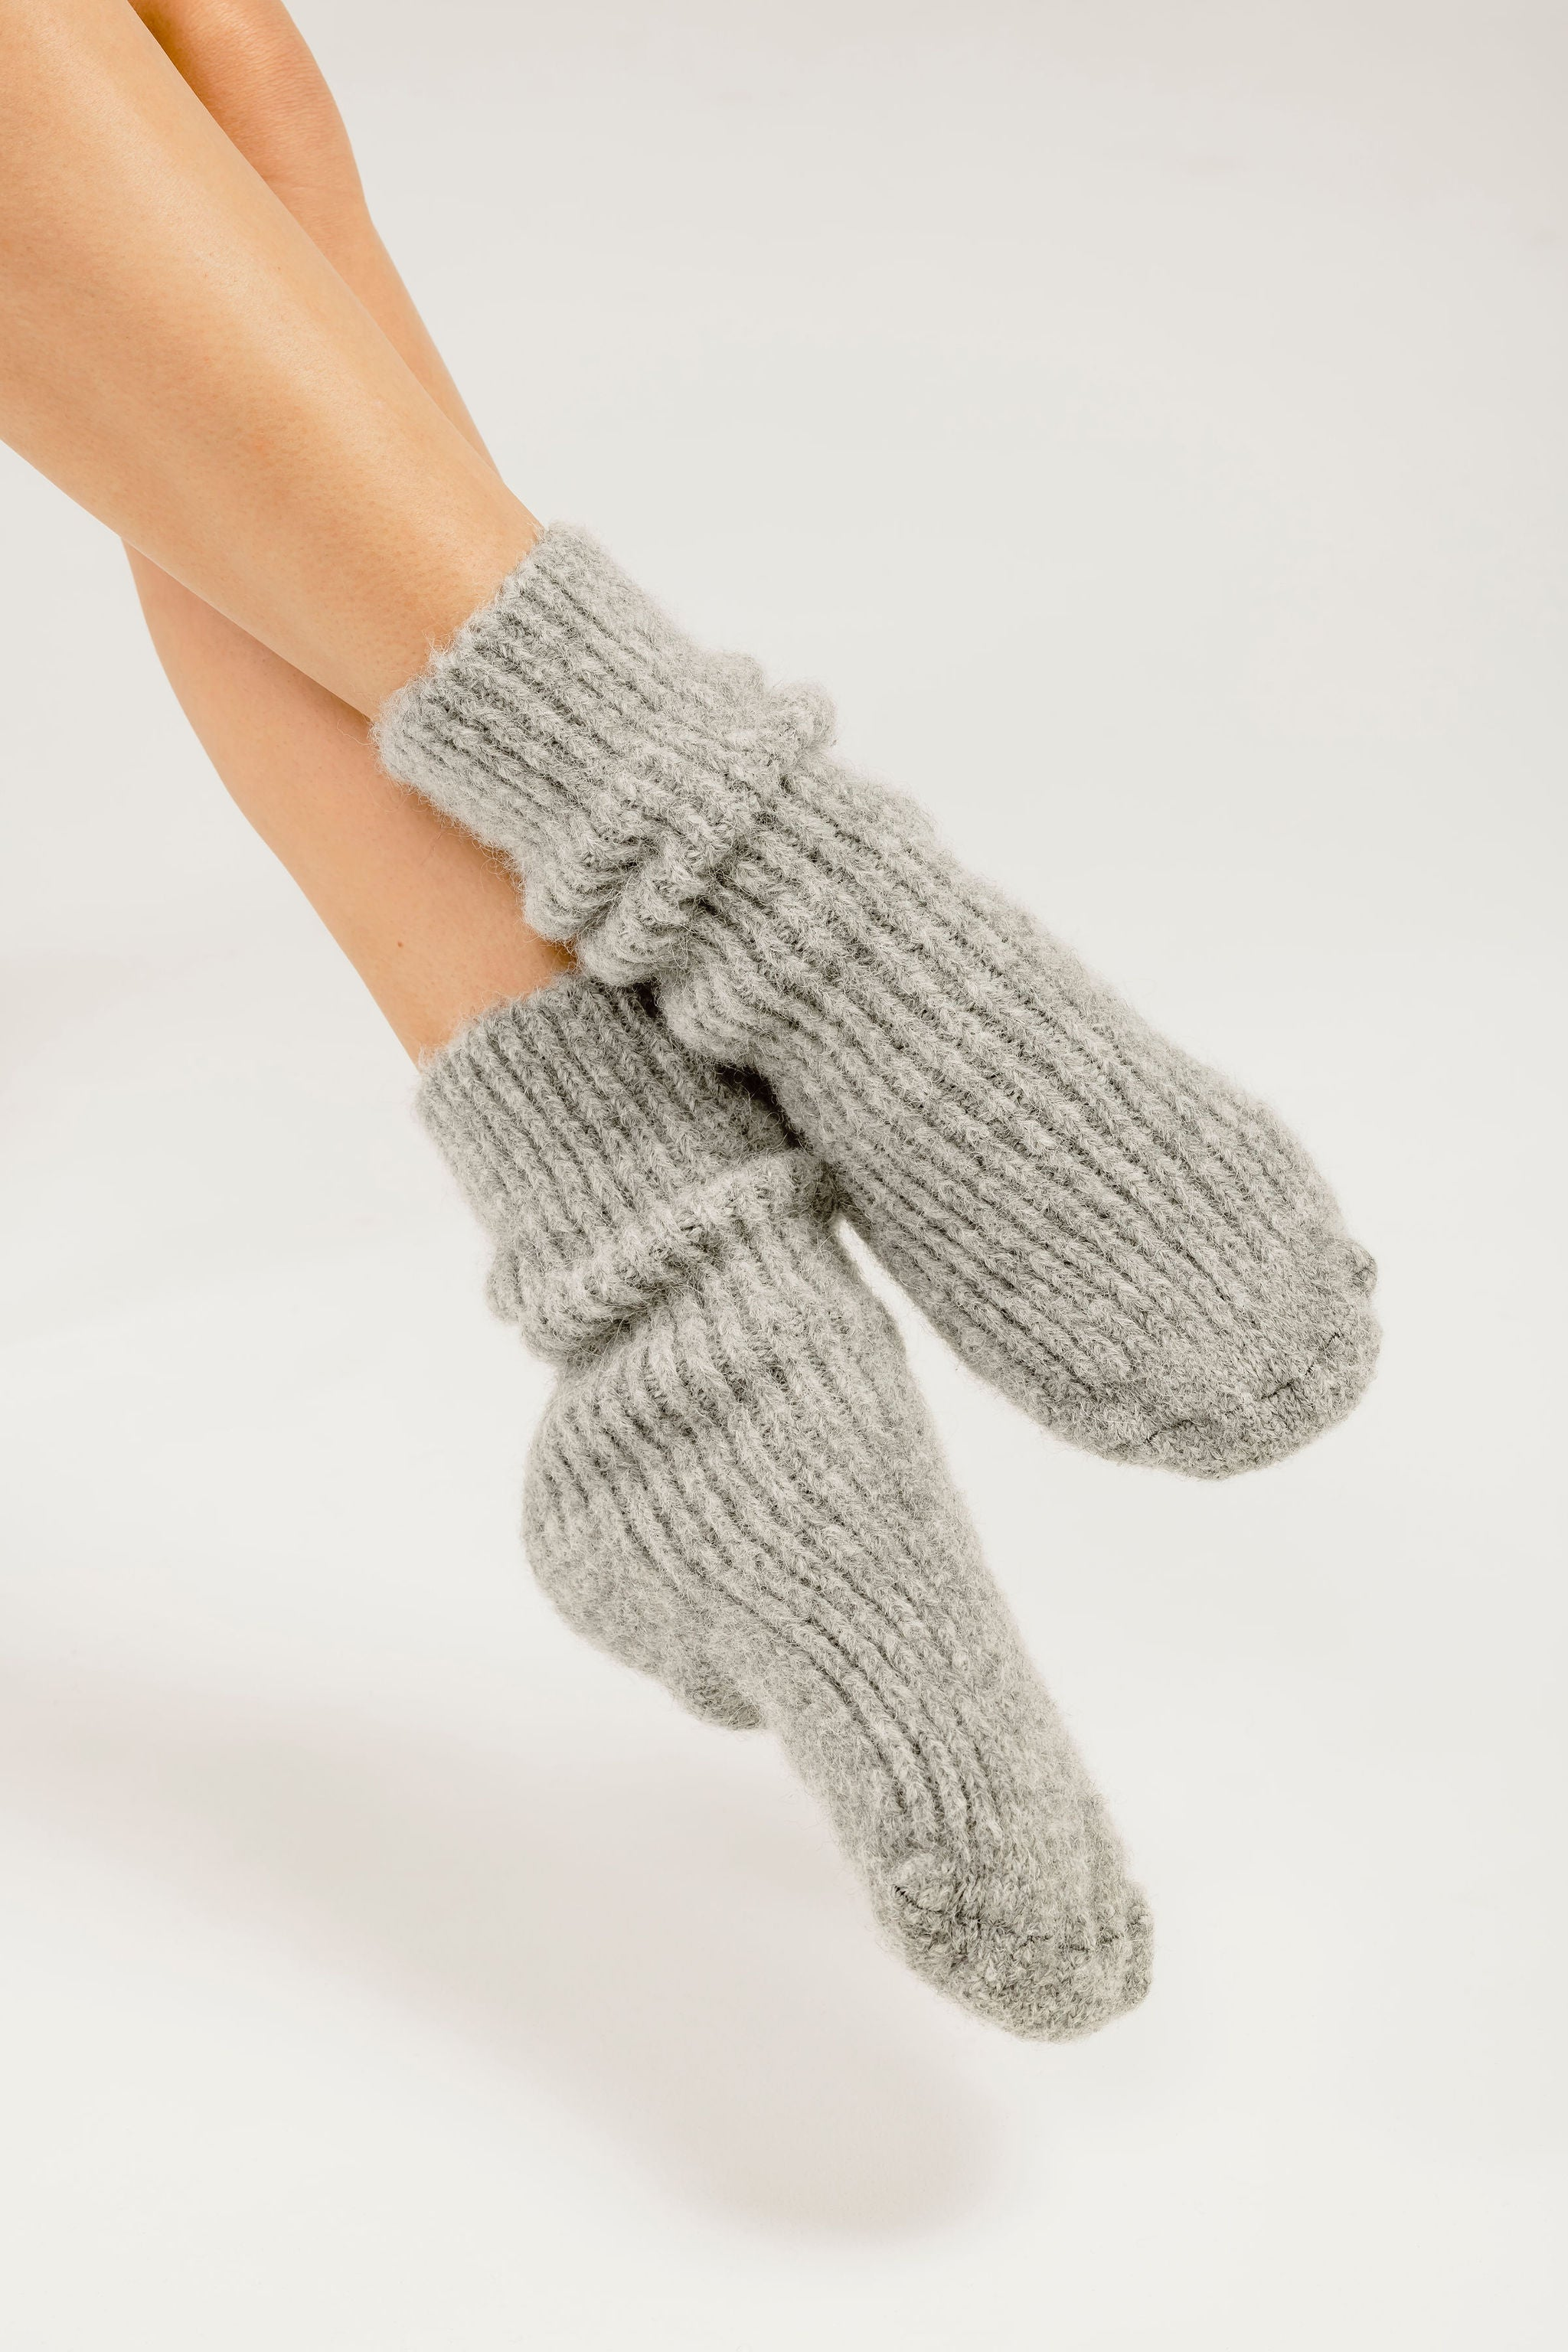 Alpaca wool socks - slipper socks - bed socks Kapeka